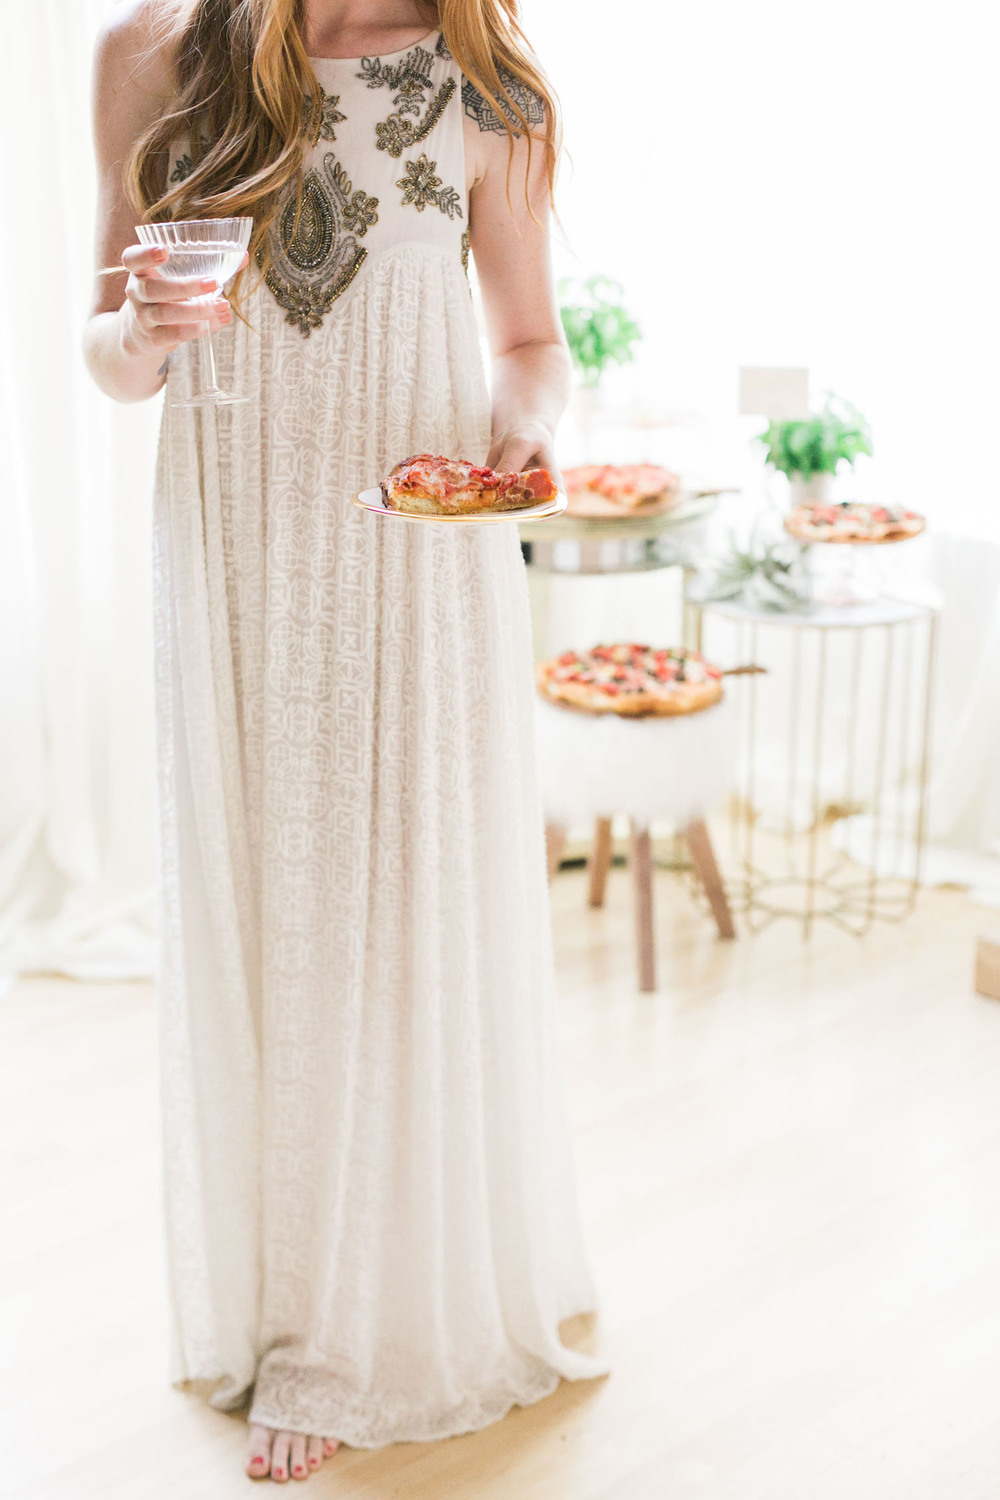 Ways to keep your rehearsal dinner chic but easy! | A Fabulous Fete